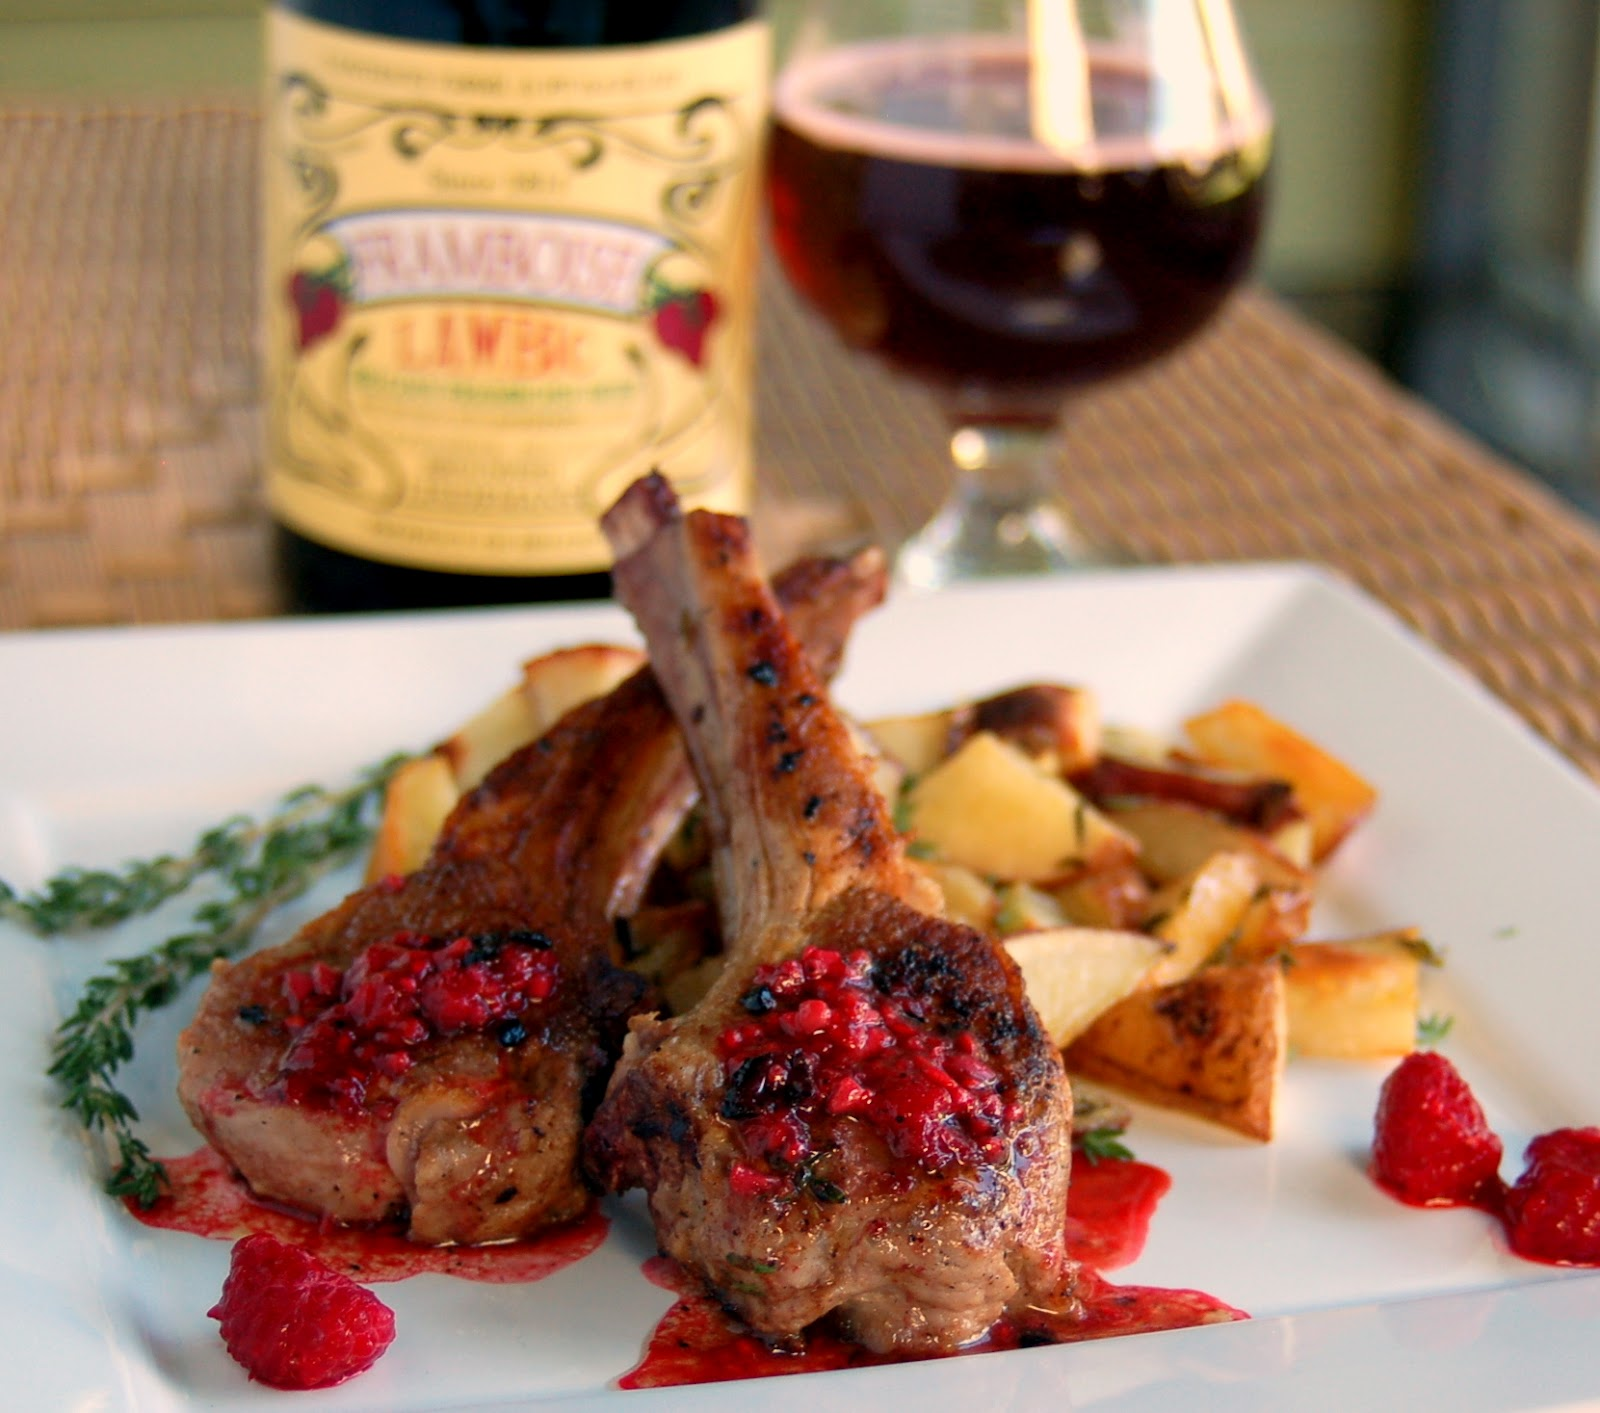 The beer cook valentines day lamb chops with roasted thyme valentines day lamb chops with roasted thyme potatoes and a framboise sauce forumfinder Gallery